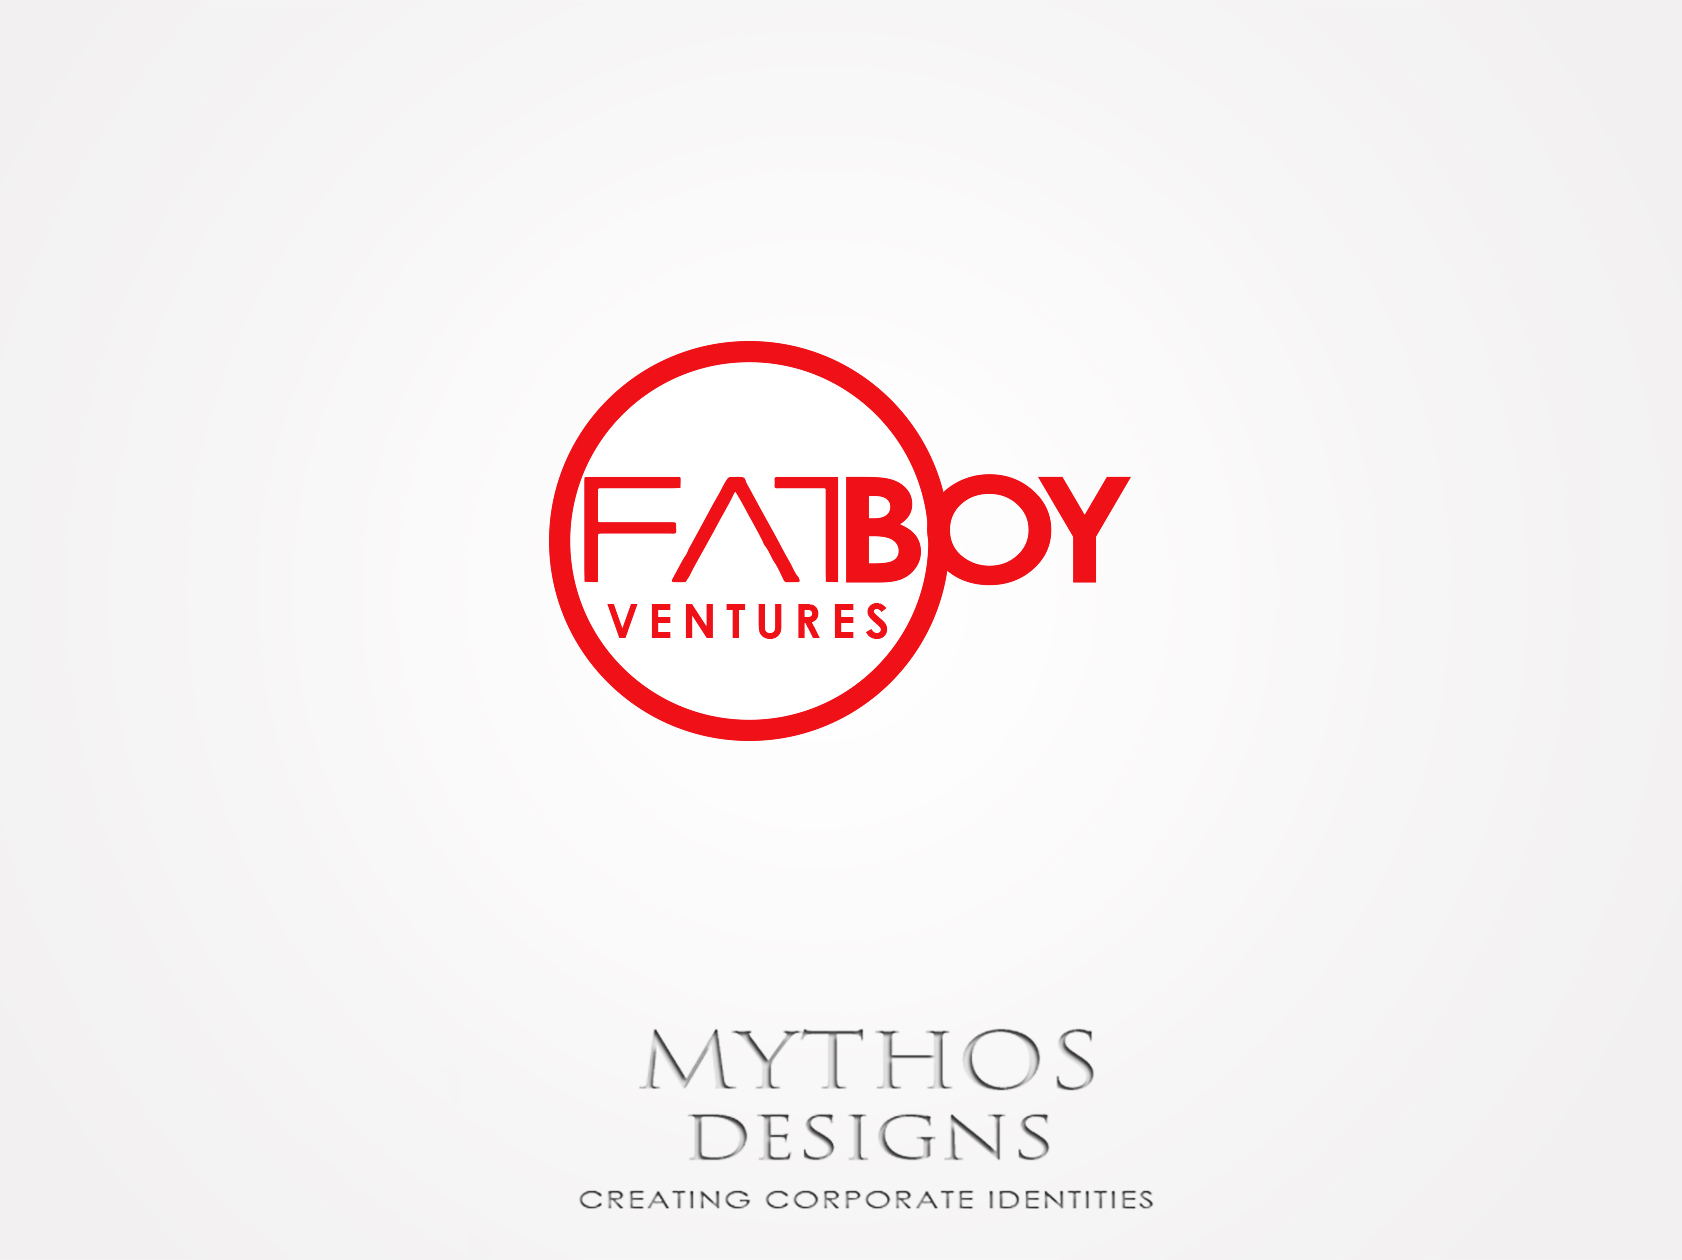 Logo Design by Mythos Designs - Entry No. 134 in the Logo Design Contest Fun Logo Design for Fat Boy Ventures.